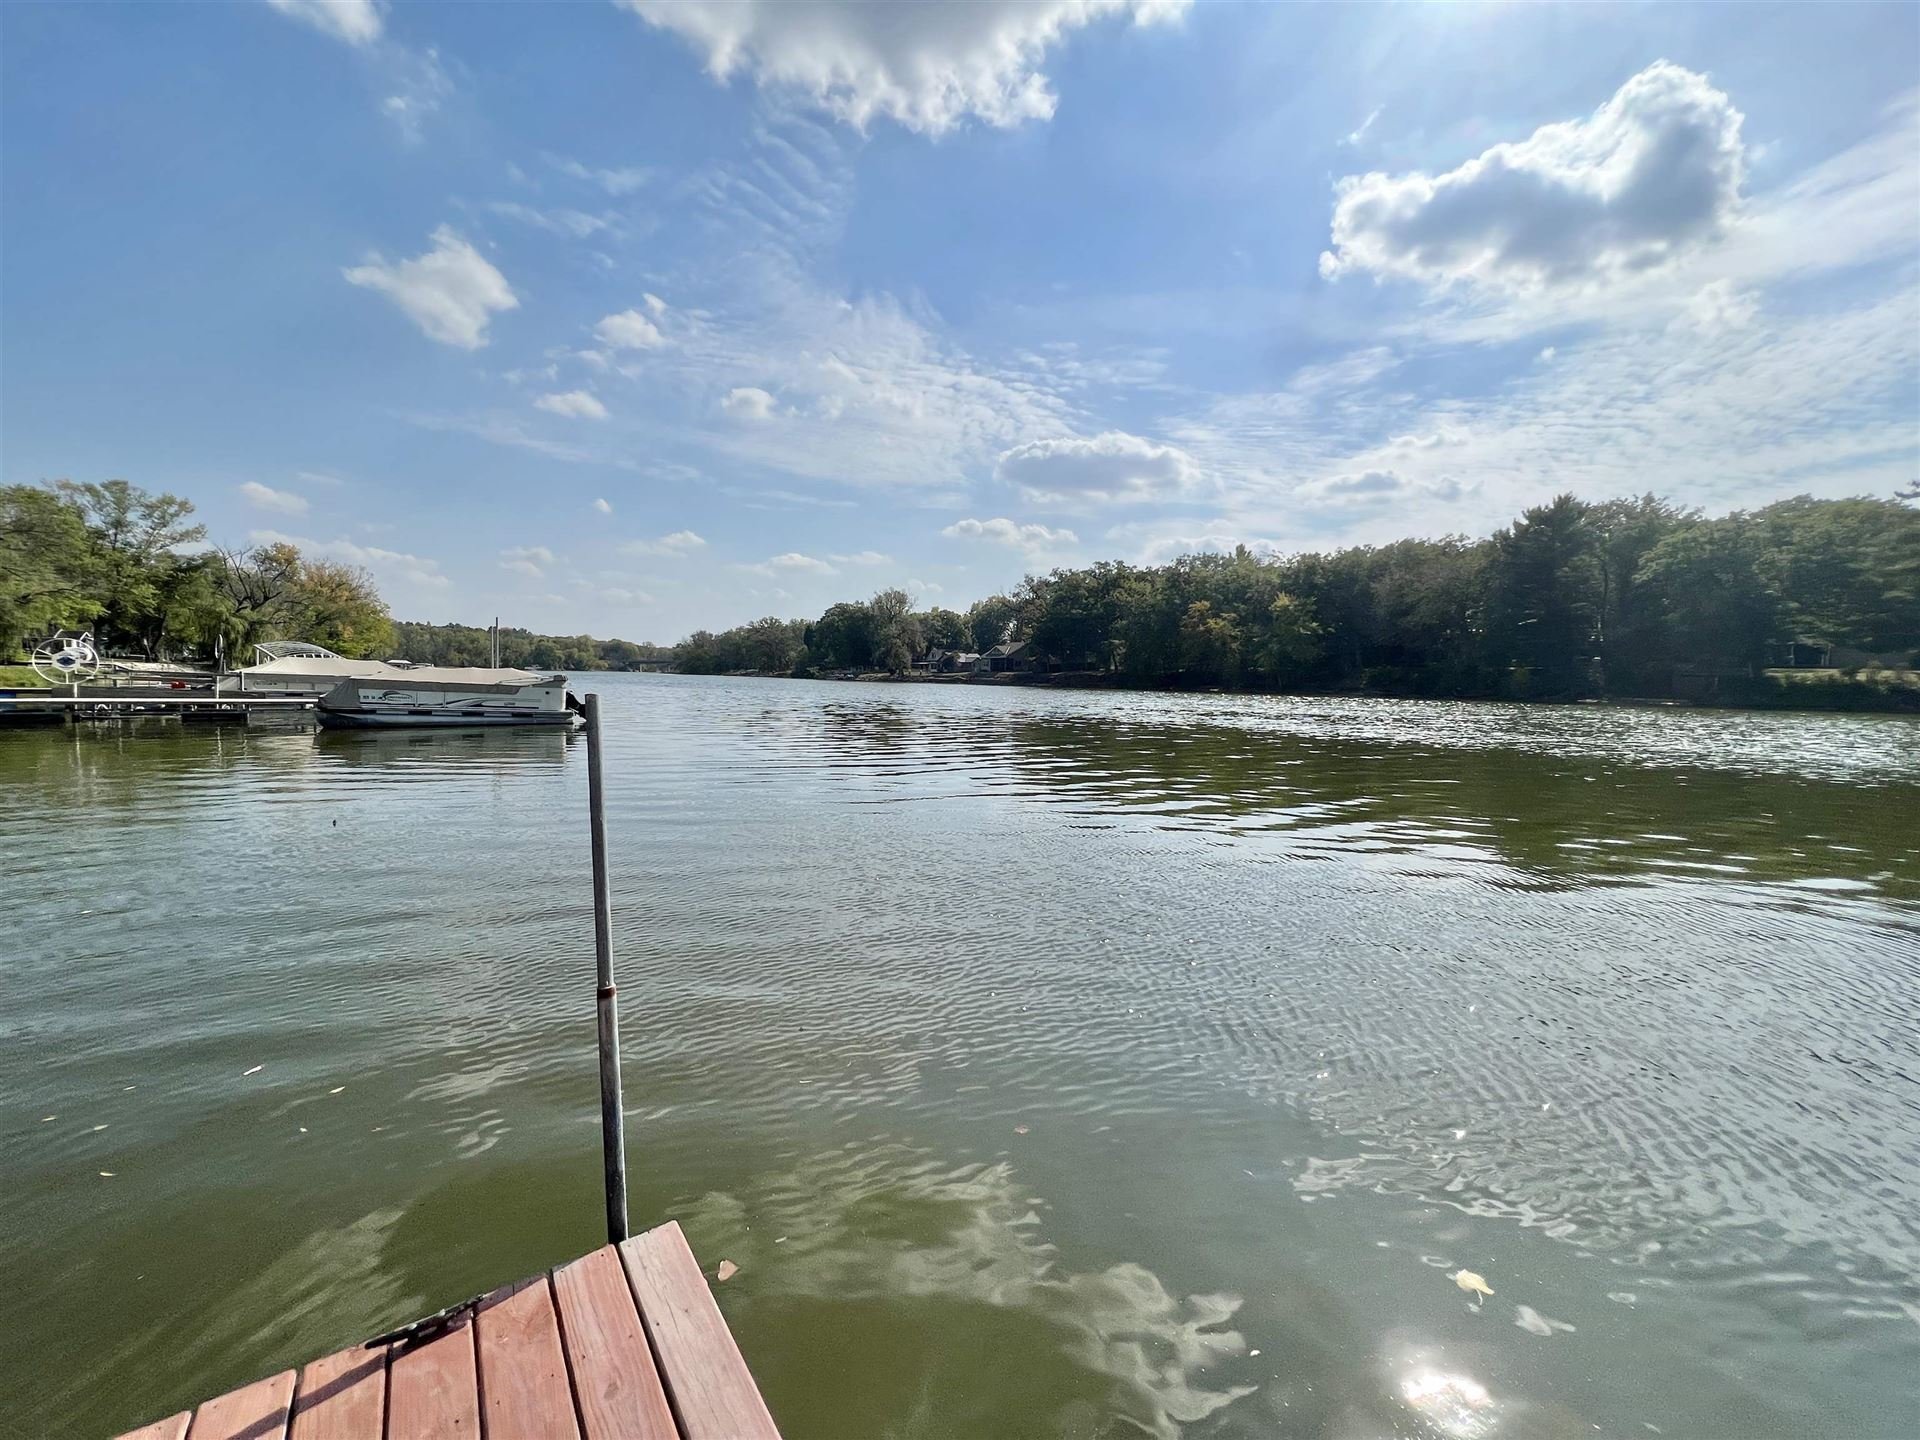 4349 N River Rd, Janesville, WI 53545 - #: 1921153